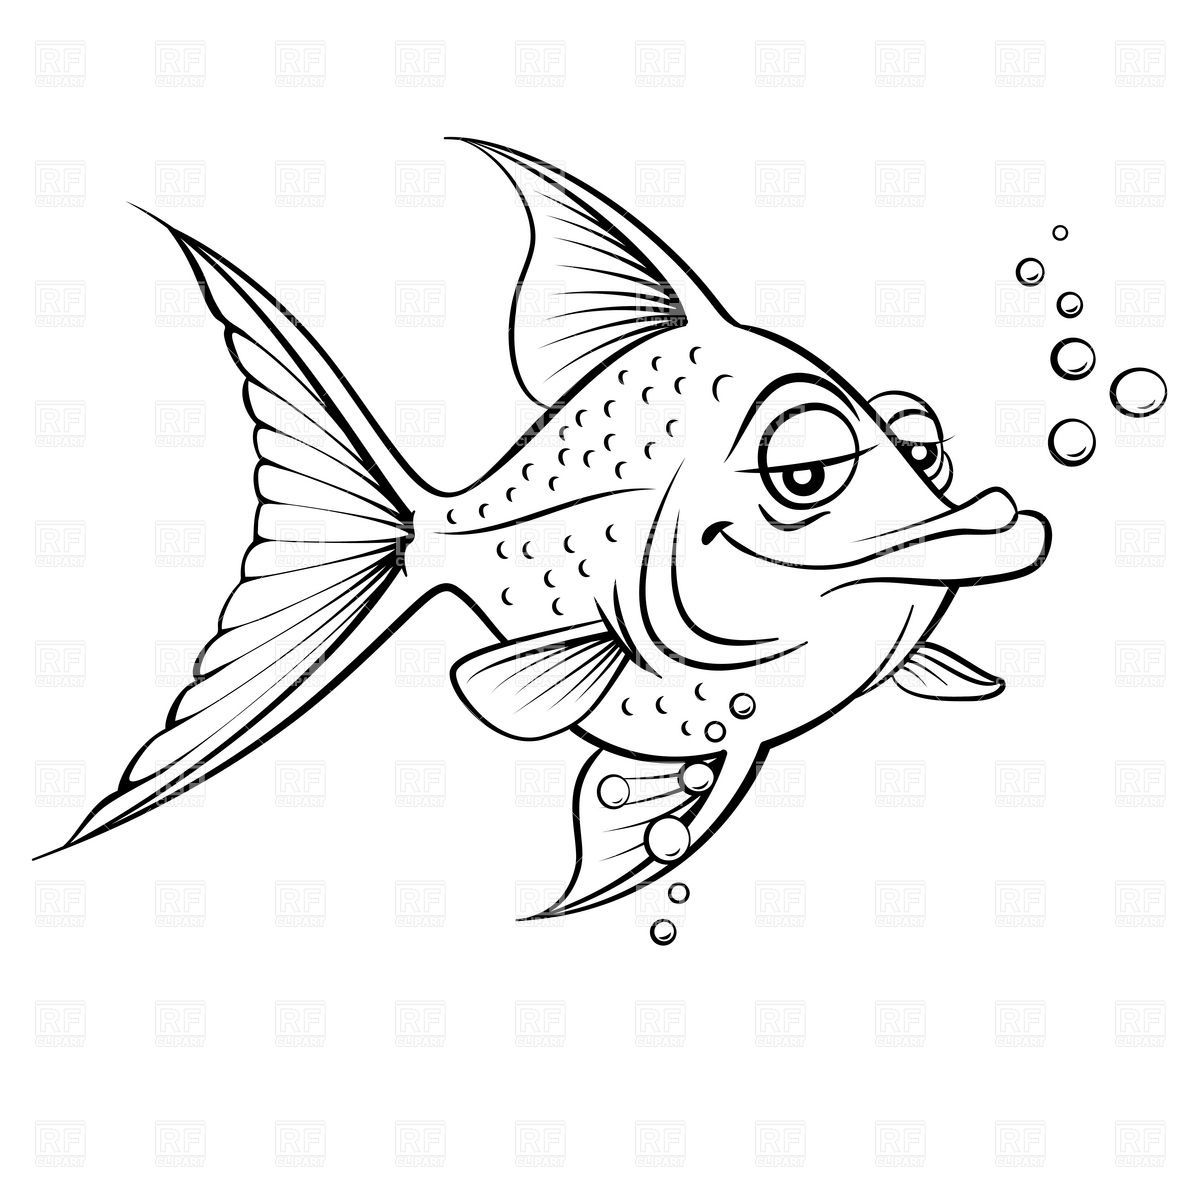 Funny cartoon fish поиск в google fish cartoon drawing cartoon fish fish drawings